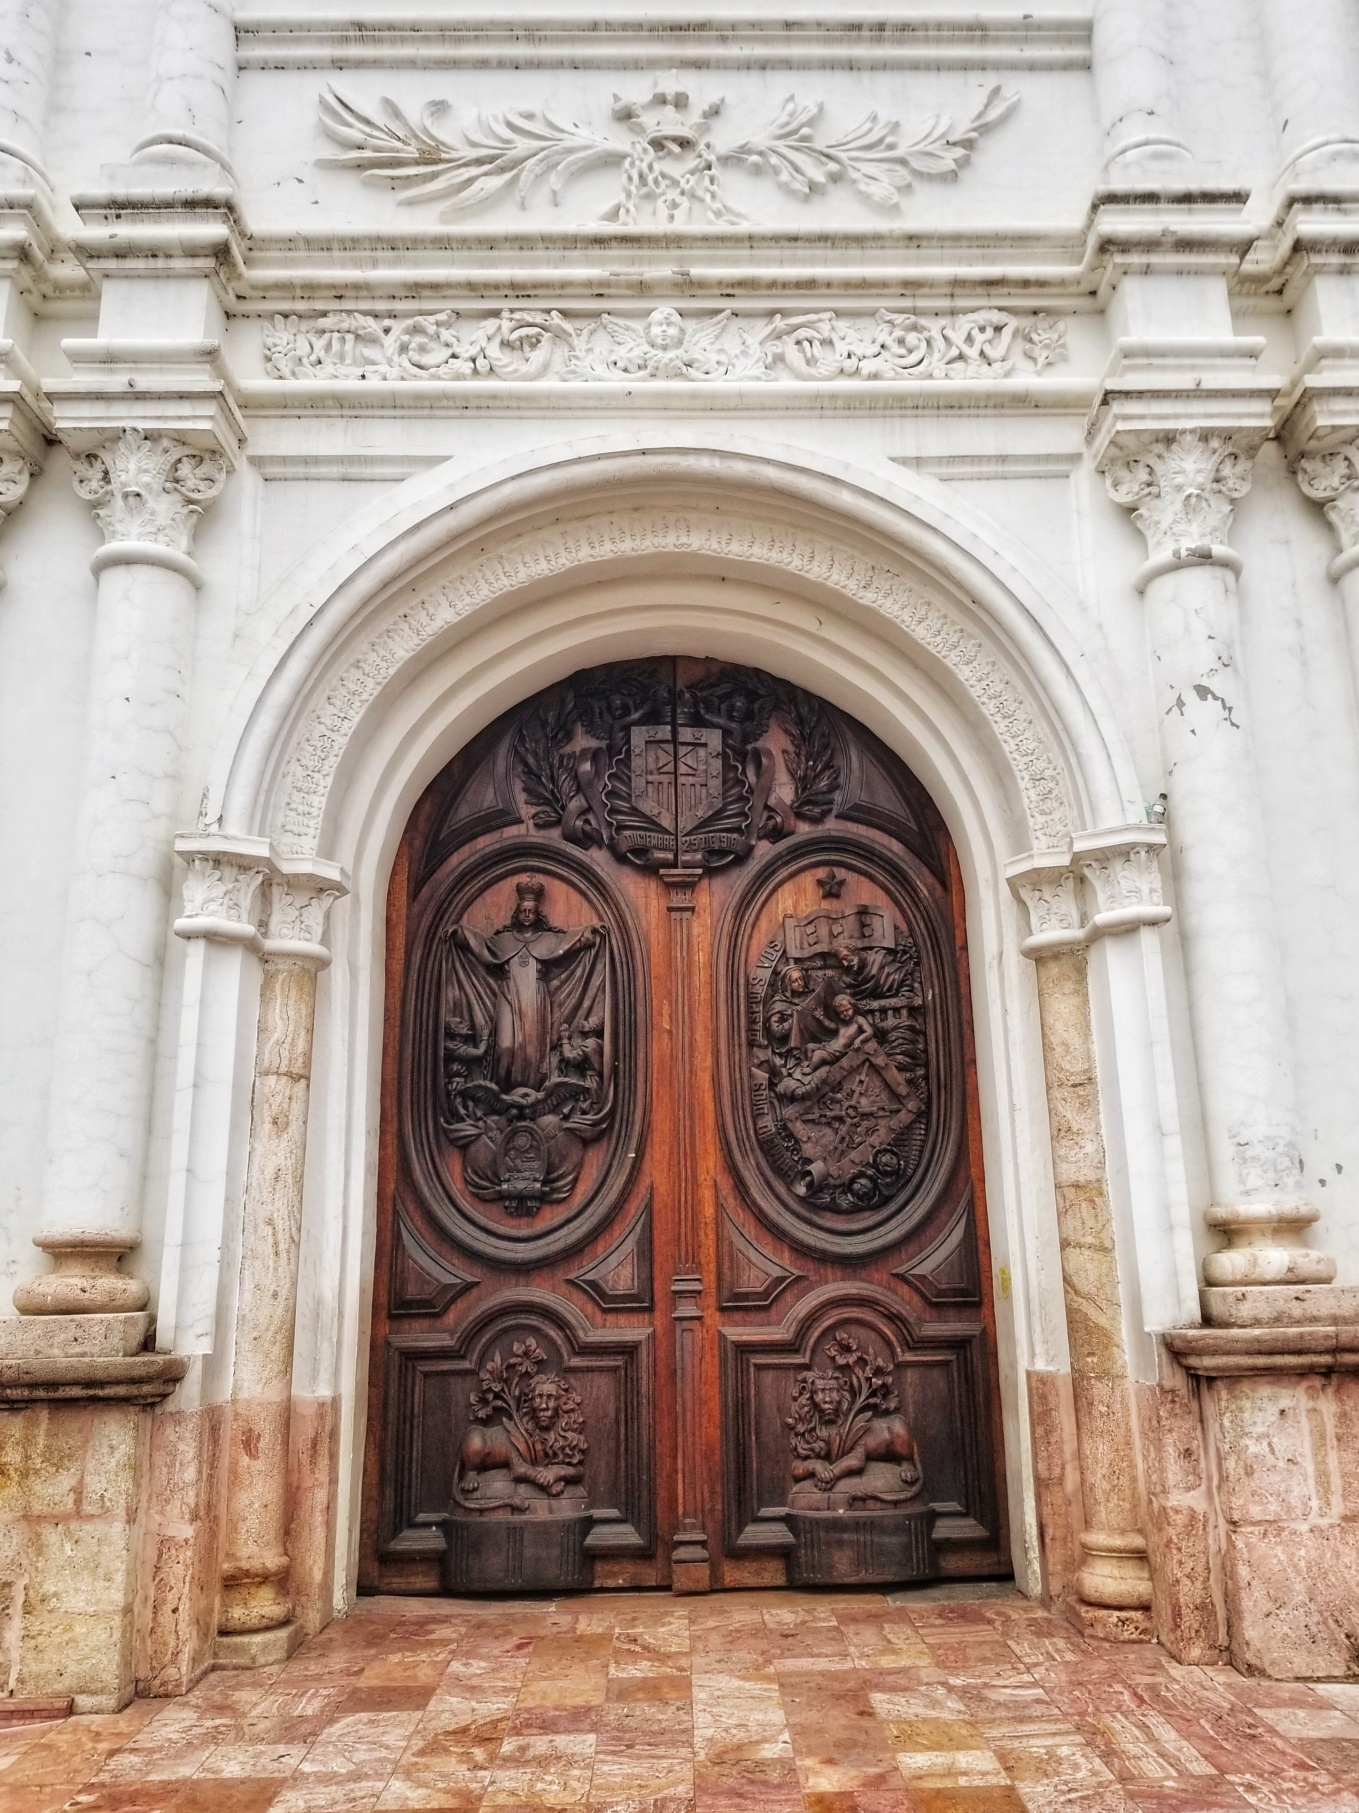 Intricate carvings on doors of a cathedral in Cuenca's Centro Histórico